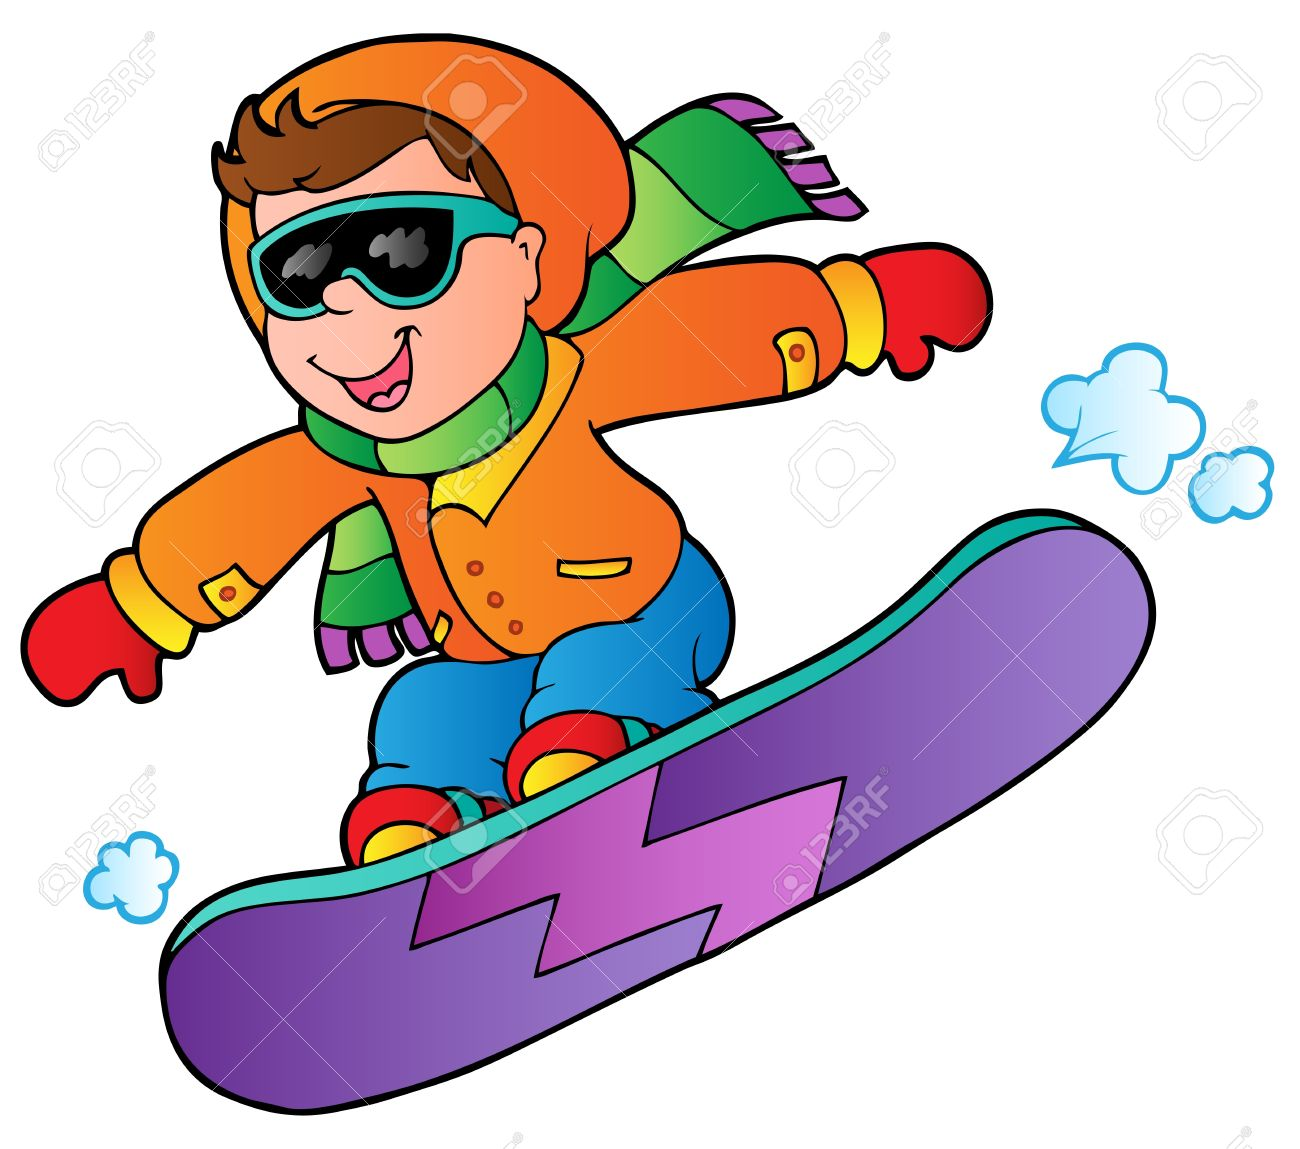 Cartoon Boy On Snowboard Illustration Royalty Free Cliparts Vectors And Stock Illustration Image 11505288